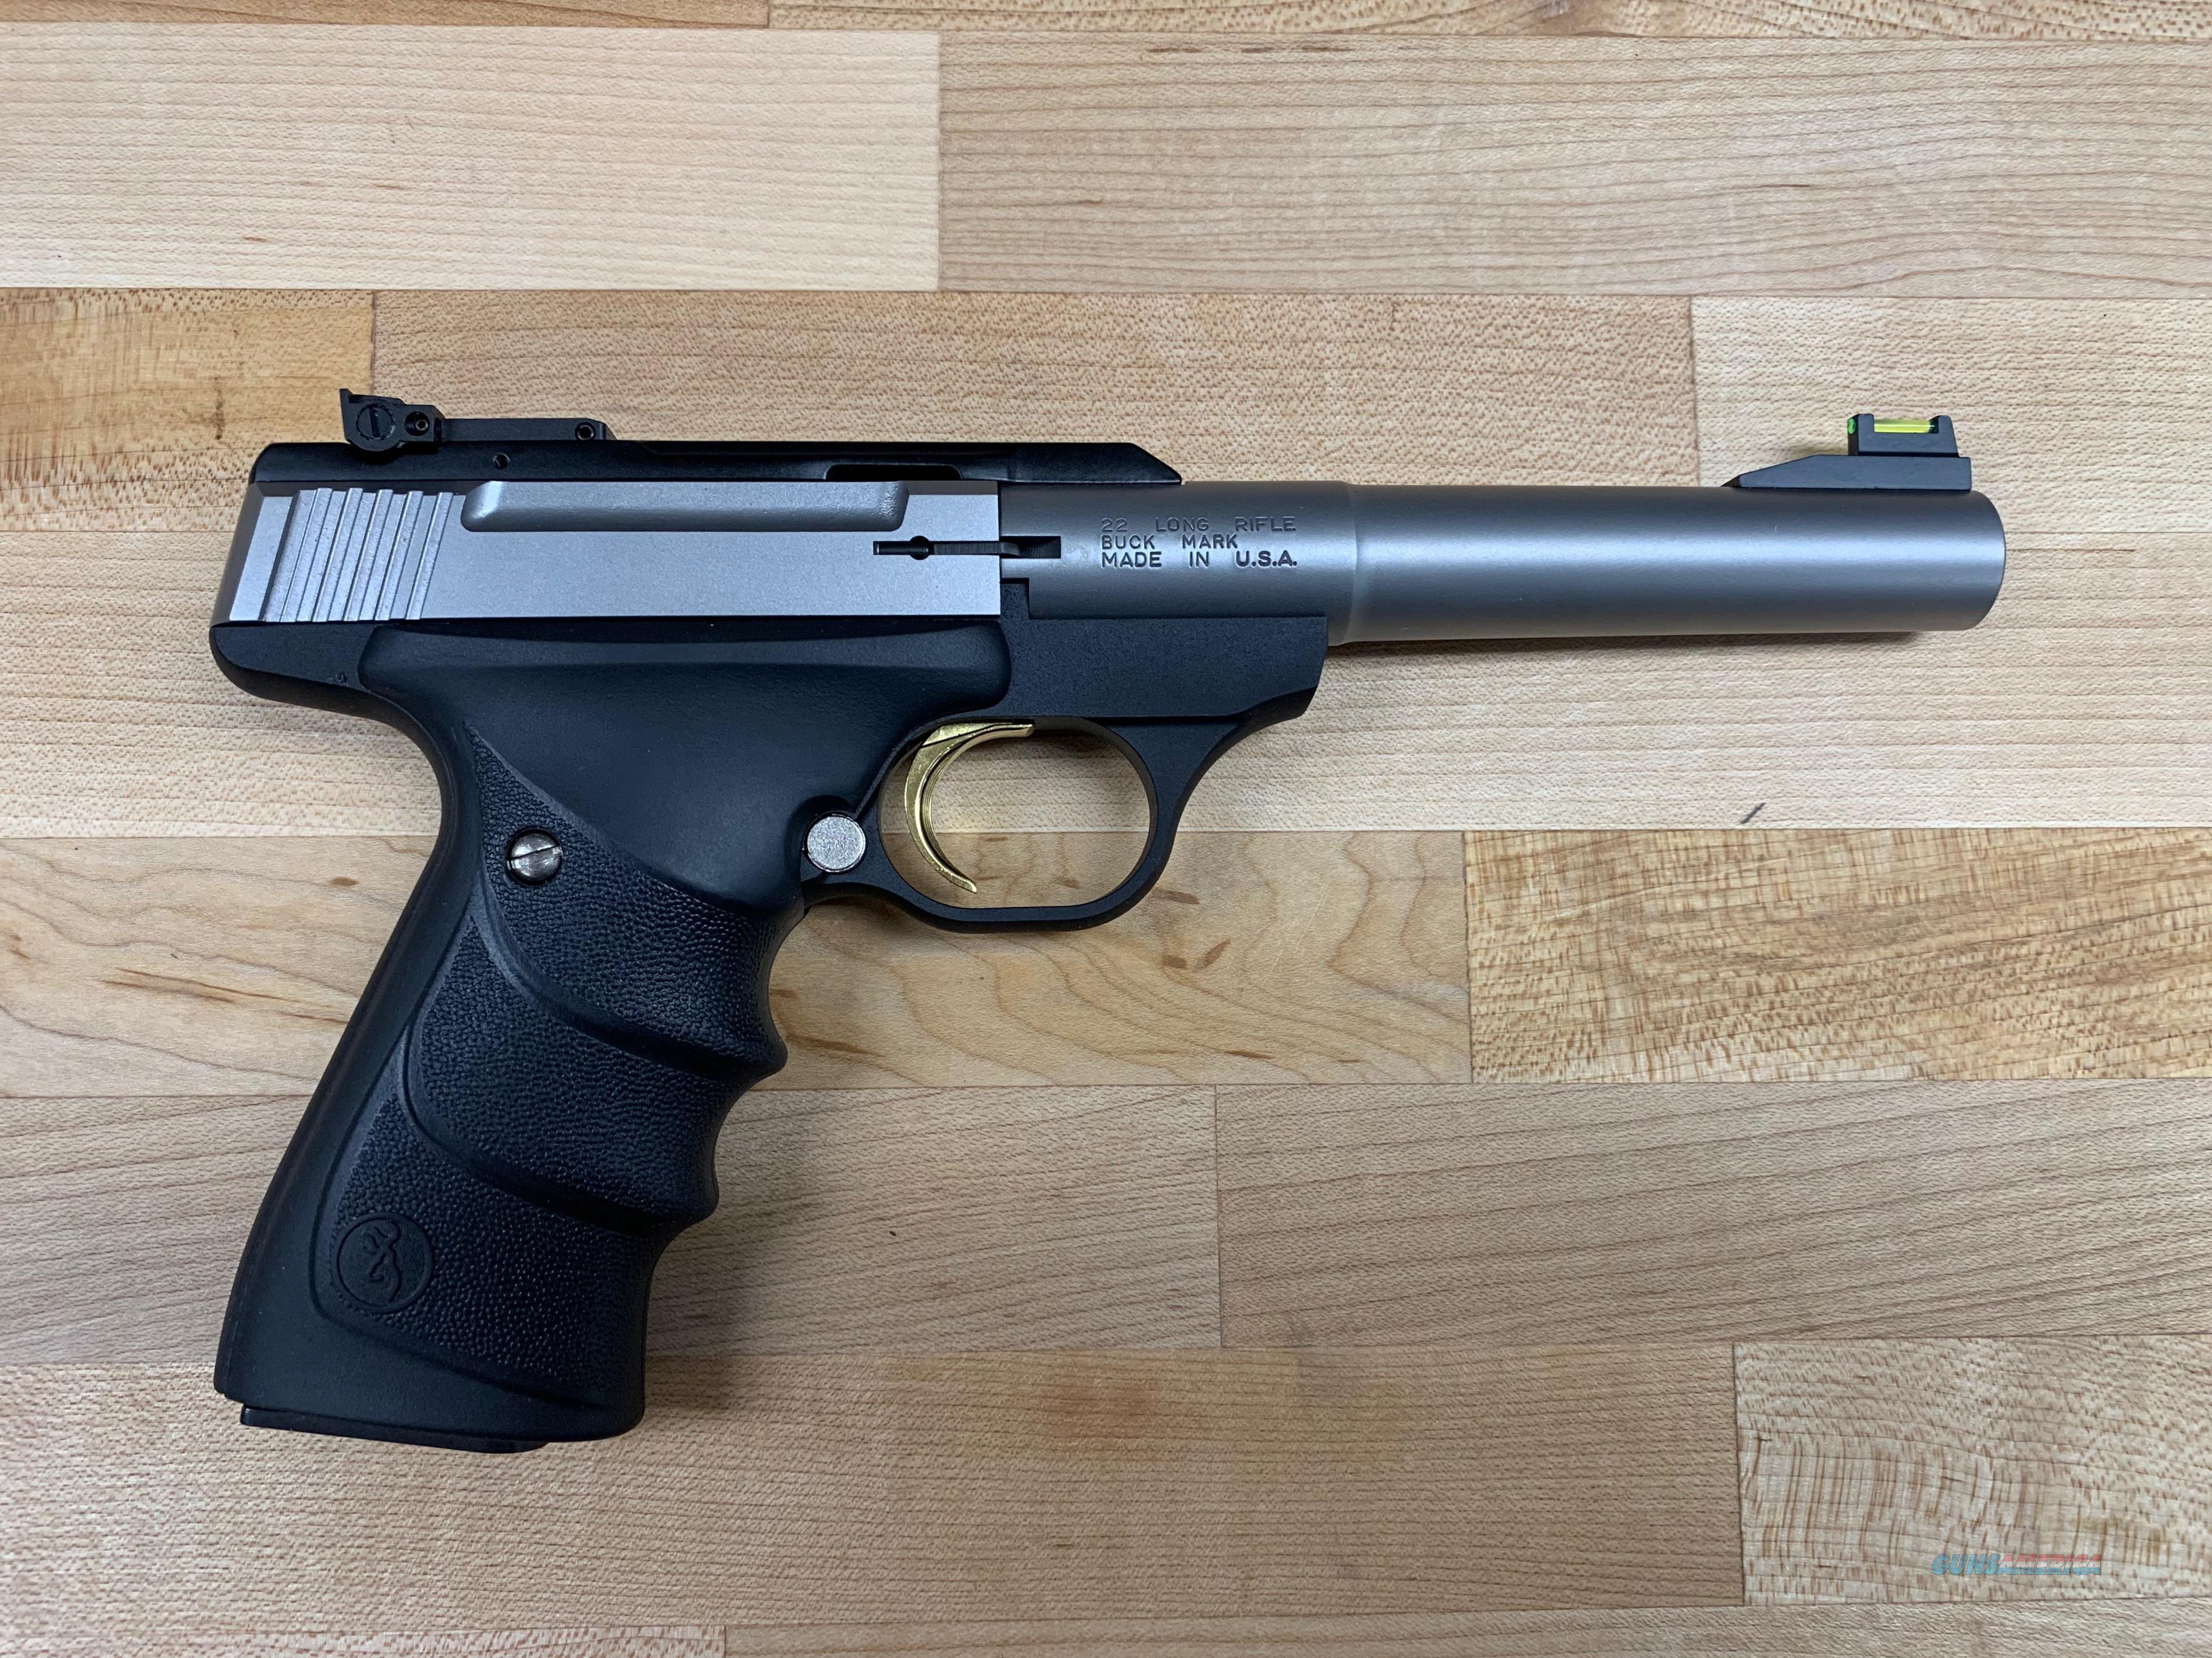 Browning 051442490 Buck Mark Camper Black Ultragrip RX Grip Stainless Steel  Guns > Pistols > Browning Pistols > Buckmark